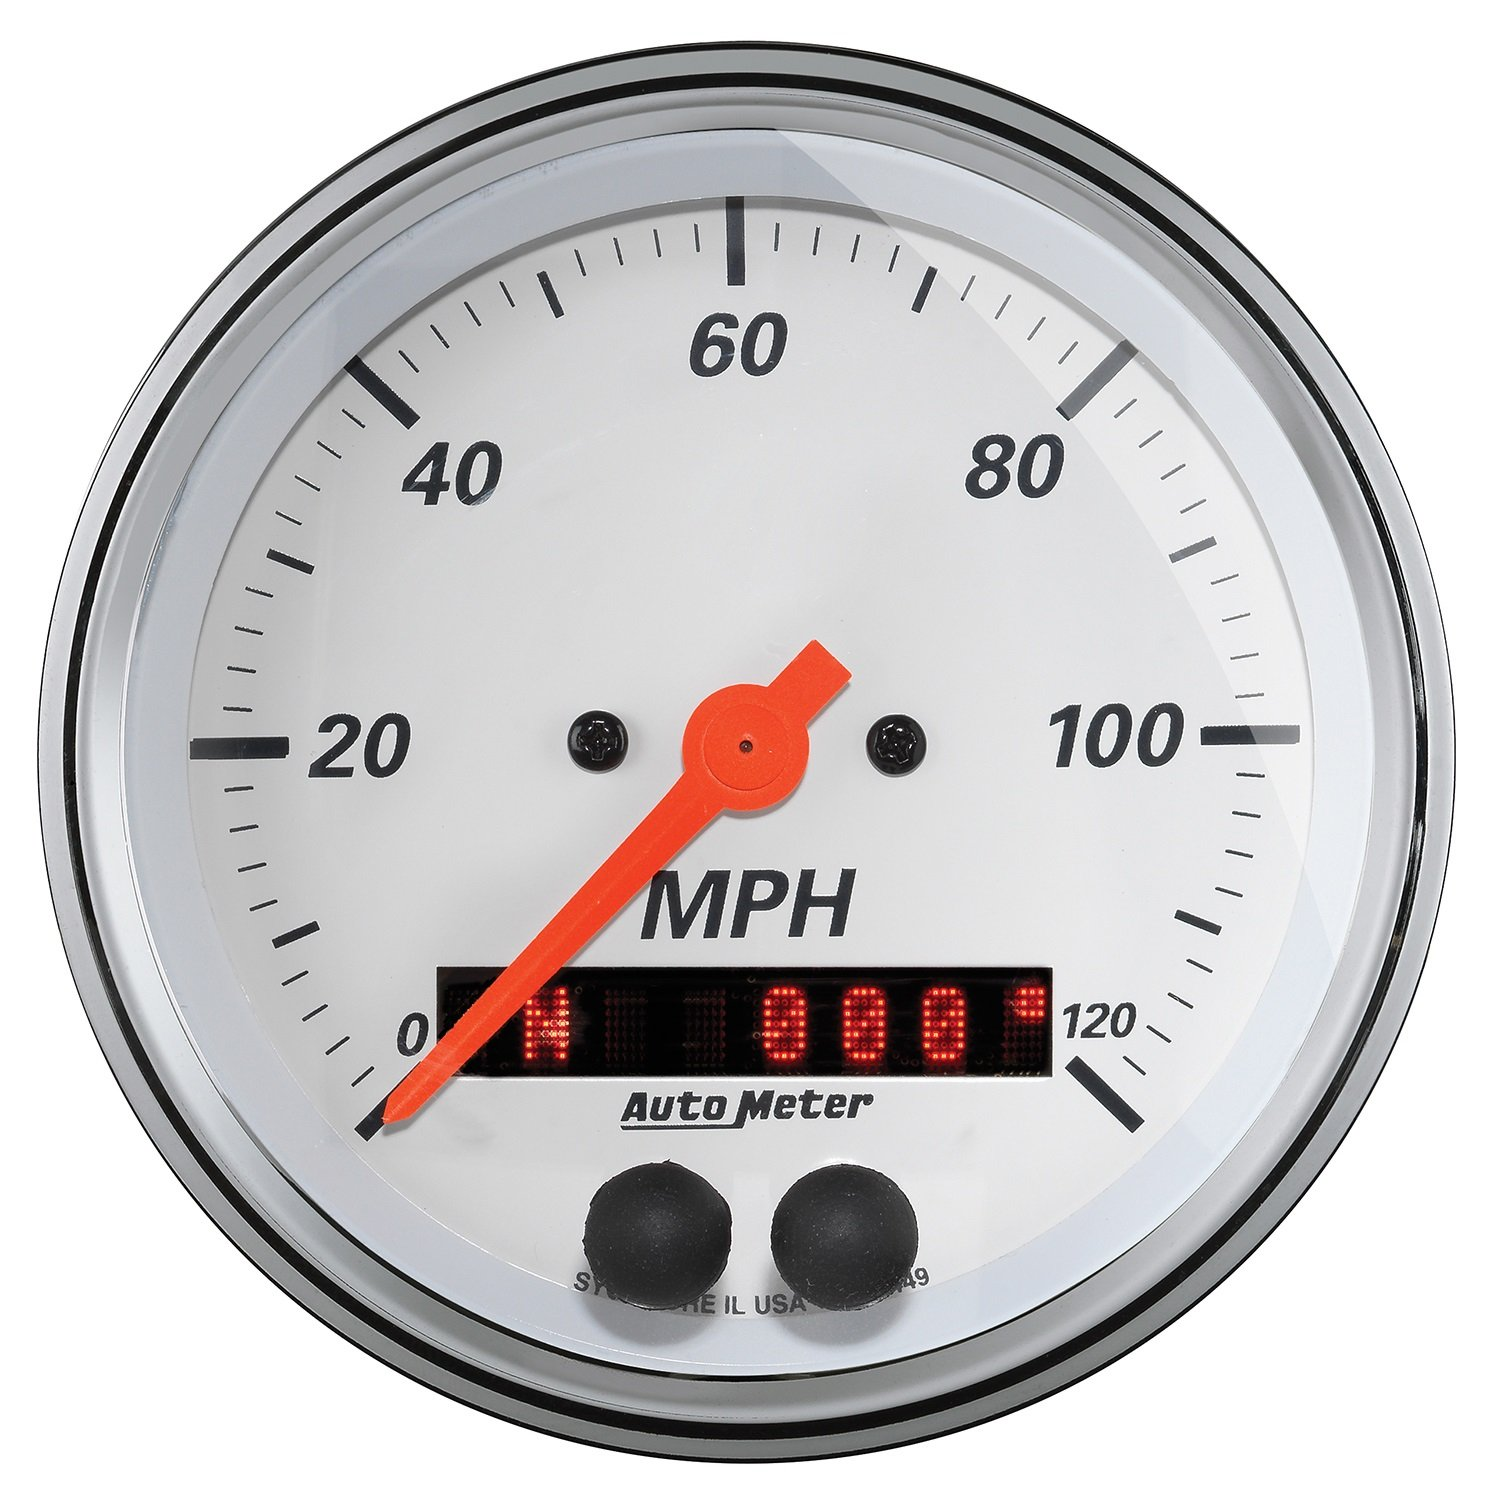 Auto Meter (1349) Arctic White 3-3/8'' 120 MPH GPS Speedometer Gauge by Auto Meter (Image #1)